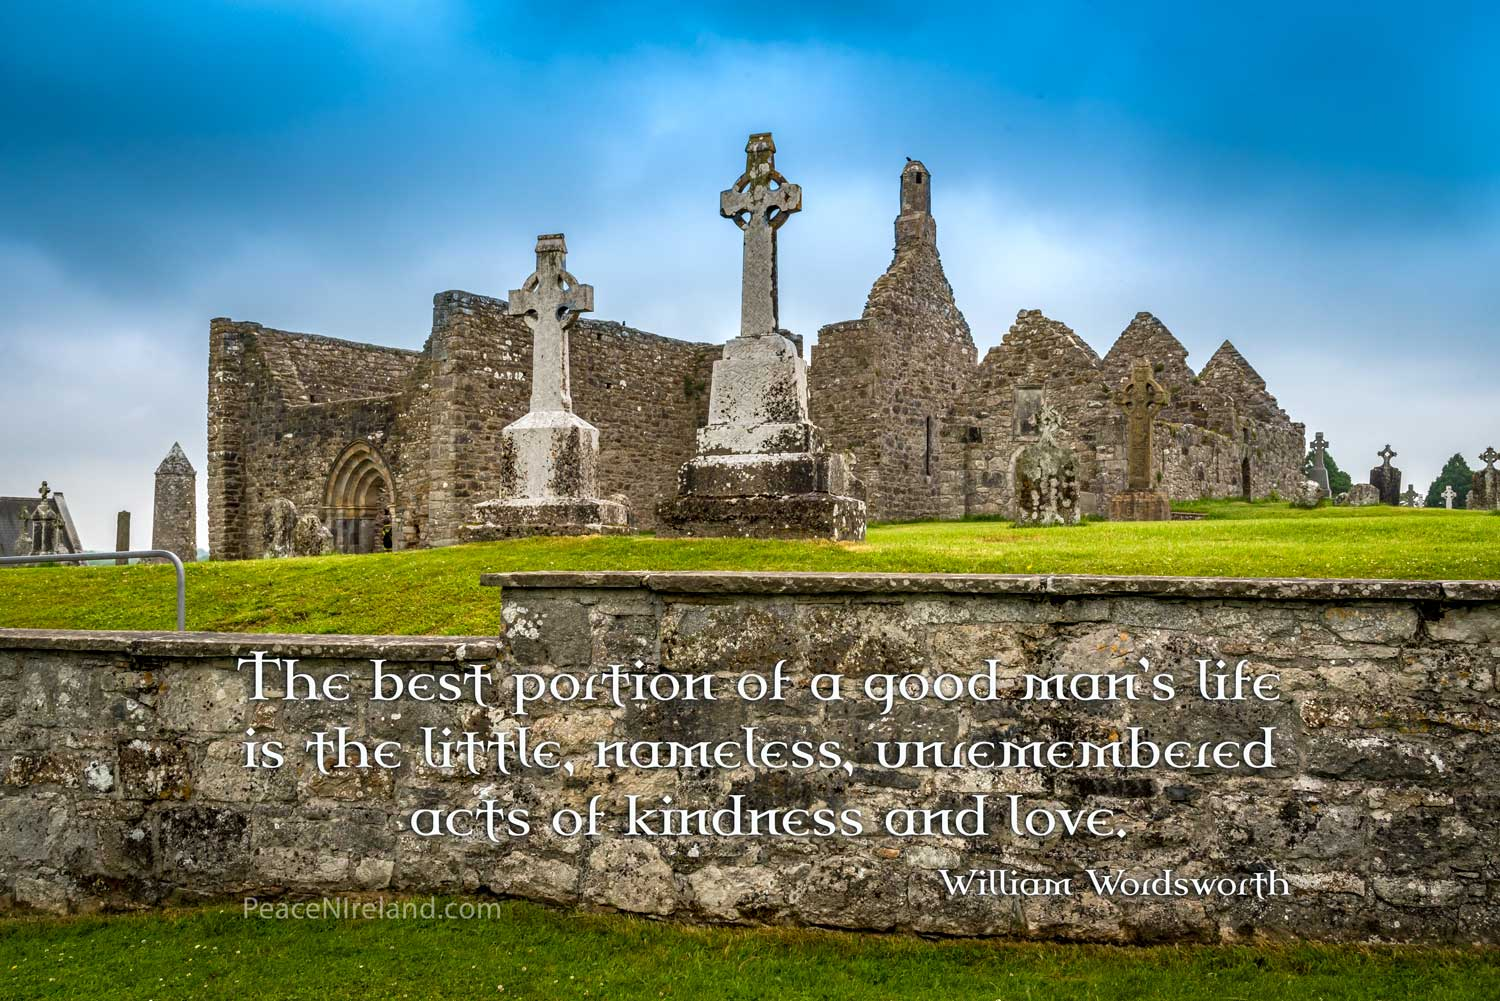 St Patrick's Cross at Clonmacnoise, County Offaly